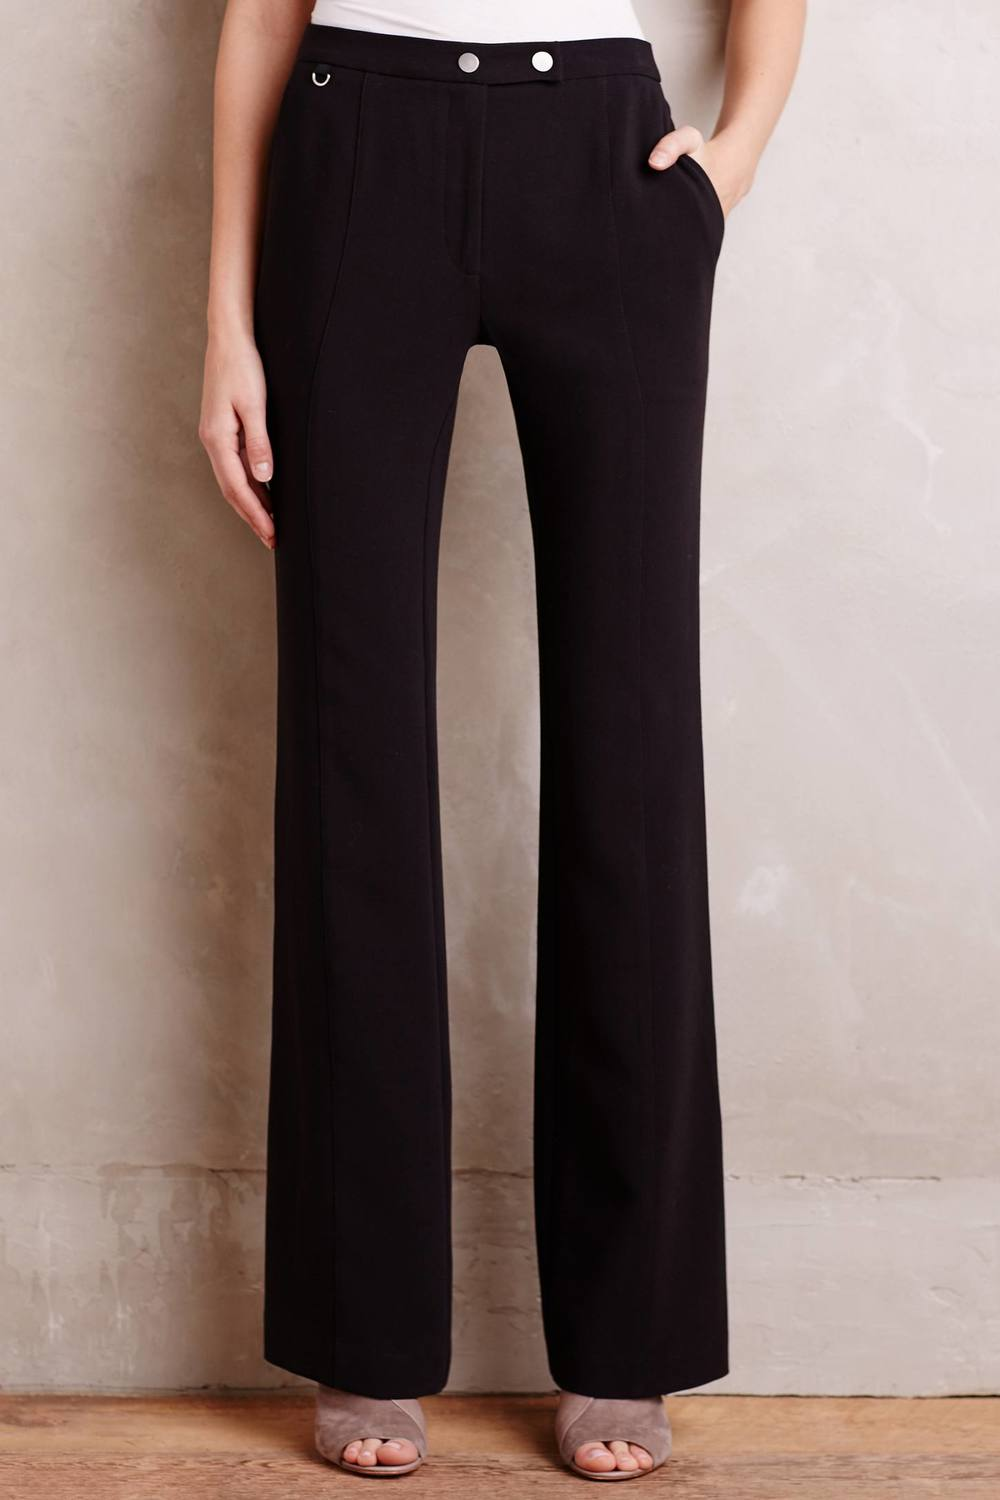 Petite Flared Elementary Trousers. Anthropologie. $118.